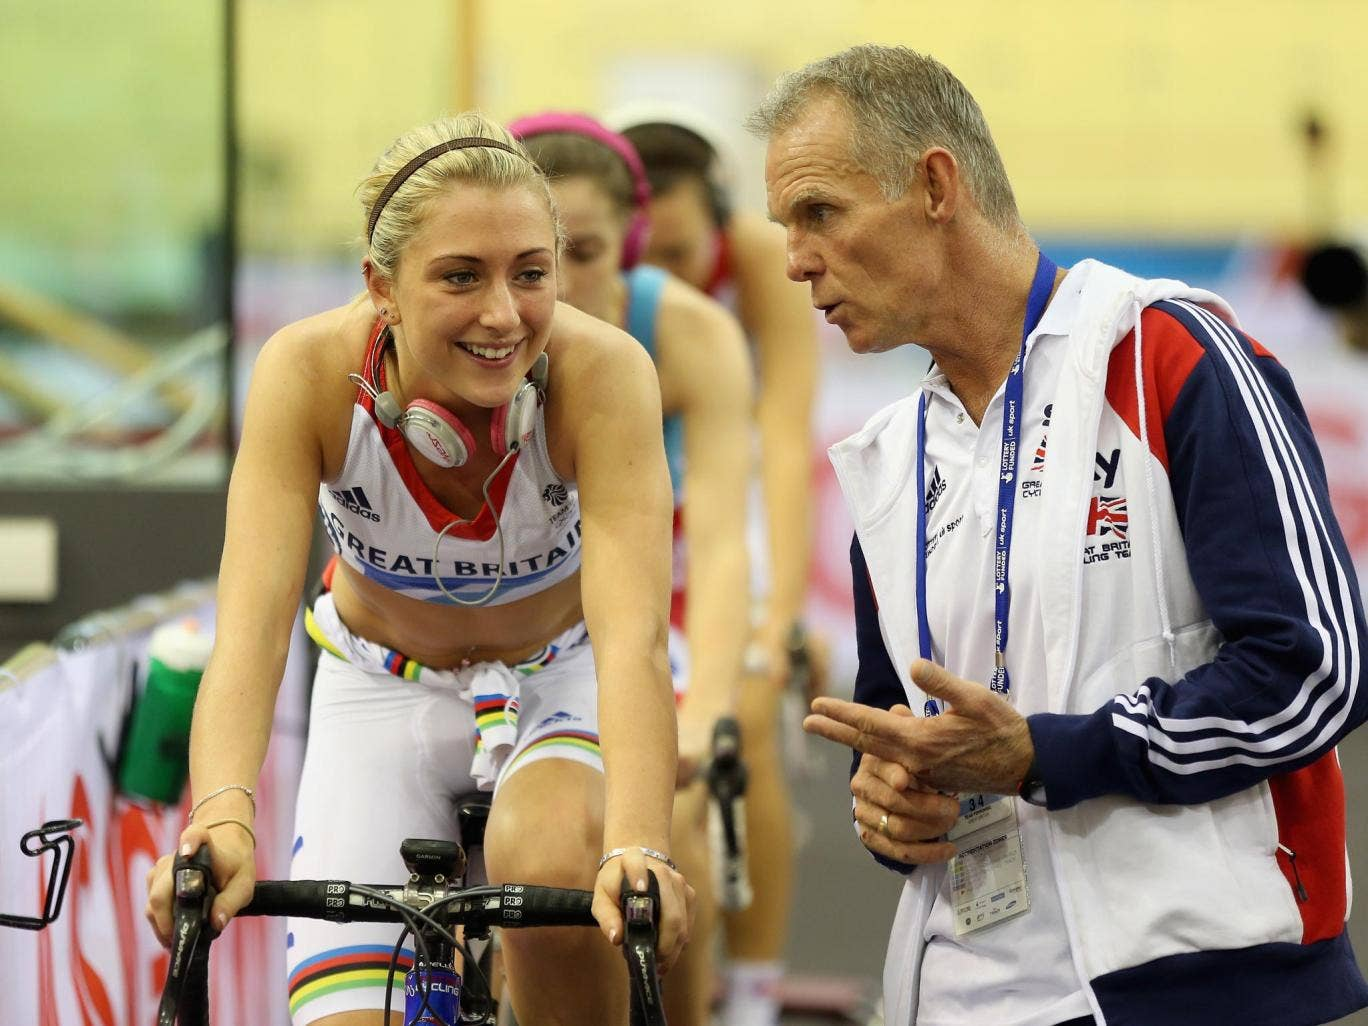 Australian coach Shane Sutton gives Laura Trott some words of advice